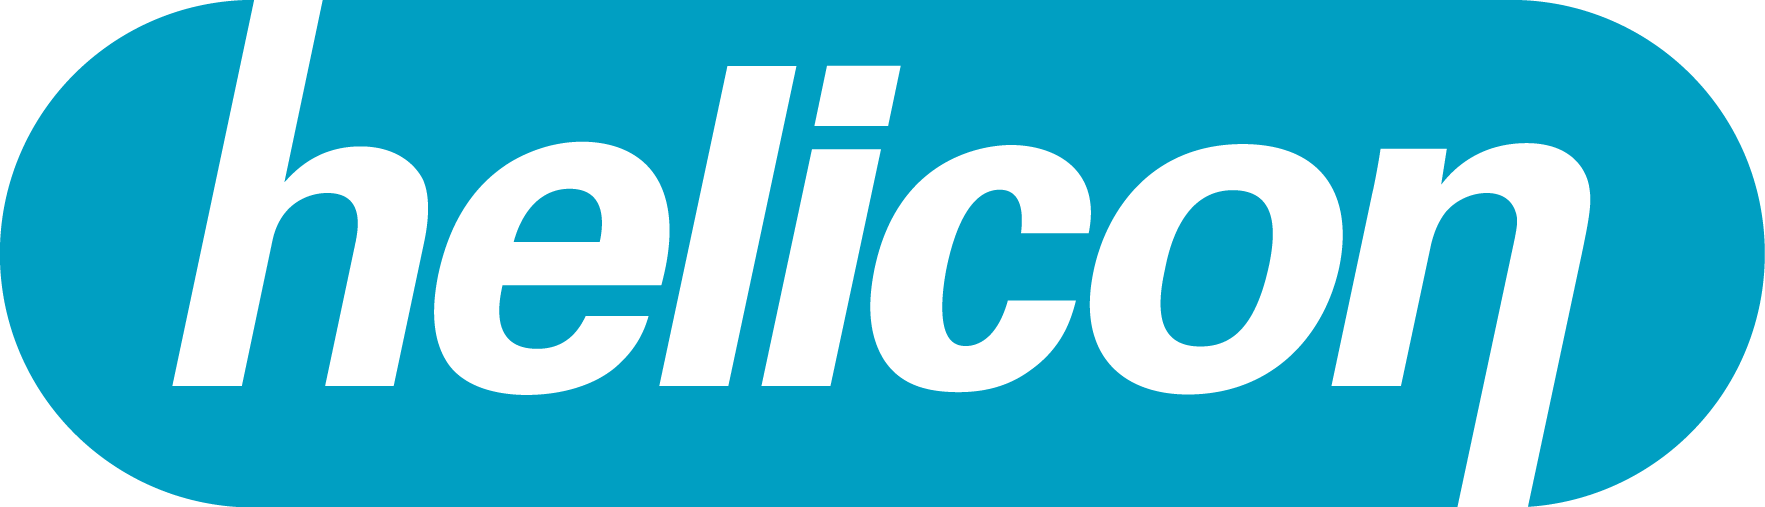 Helicon_logo.png